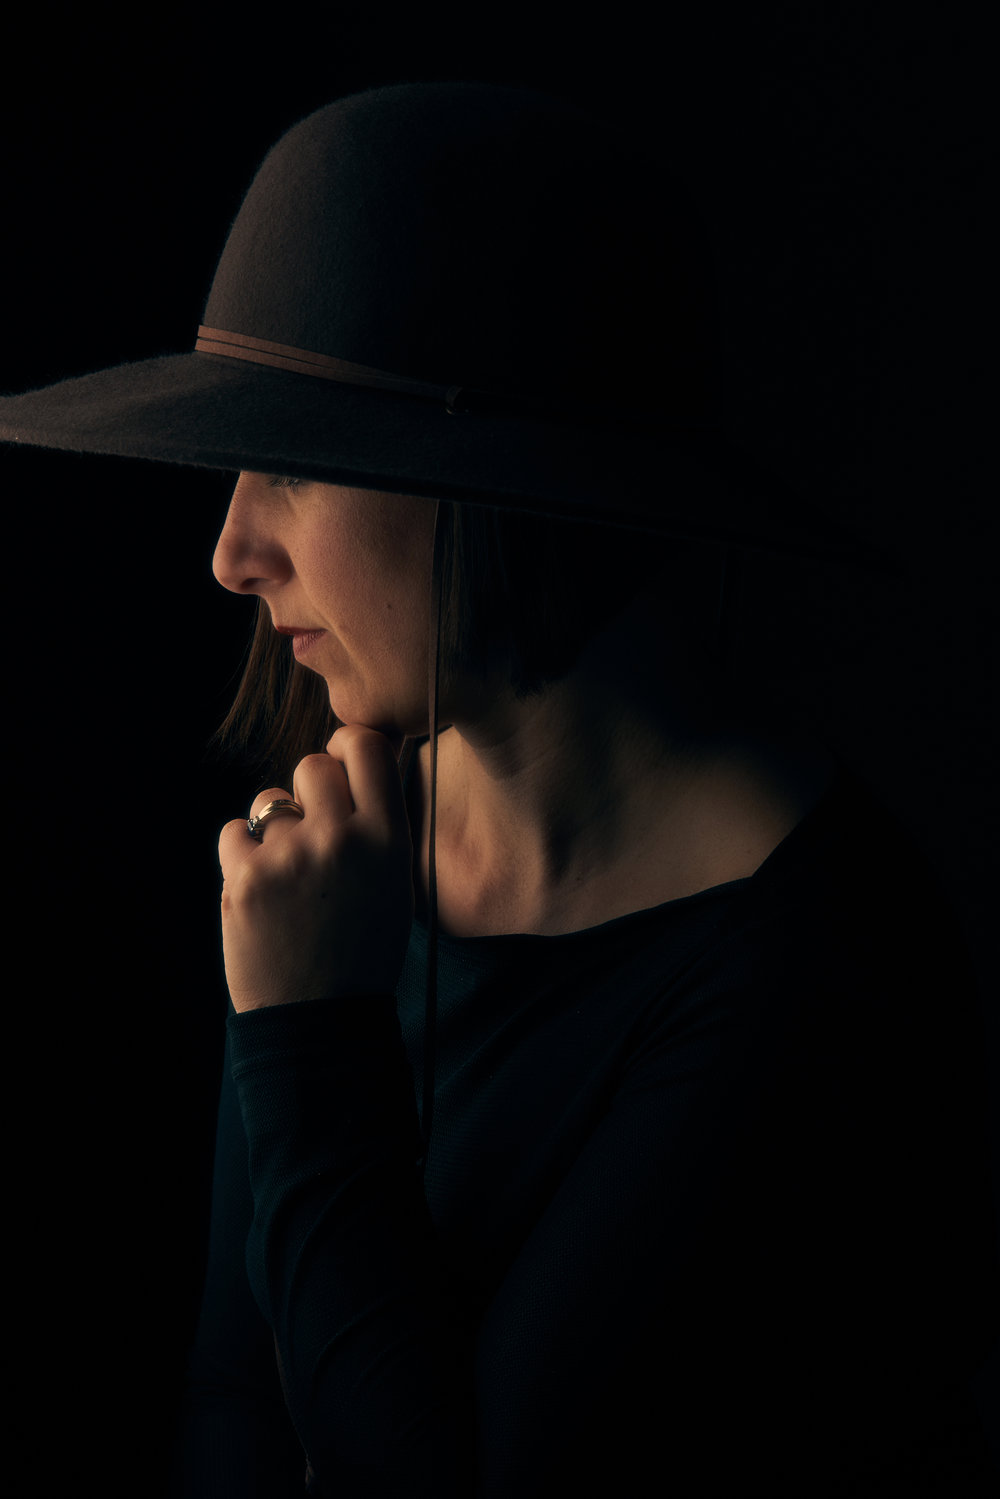 Professional portrait of woman's profile wearing black and with a black hat in a studio environment with a solid black background